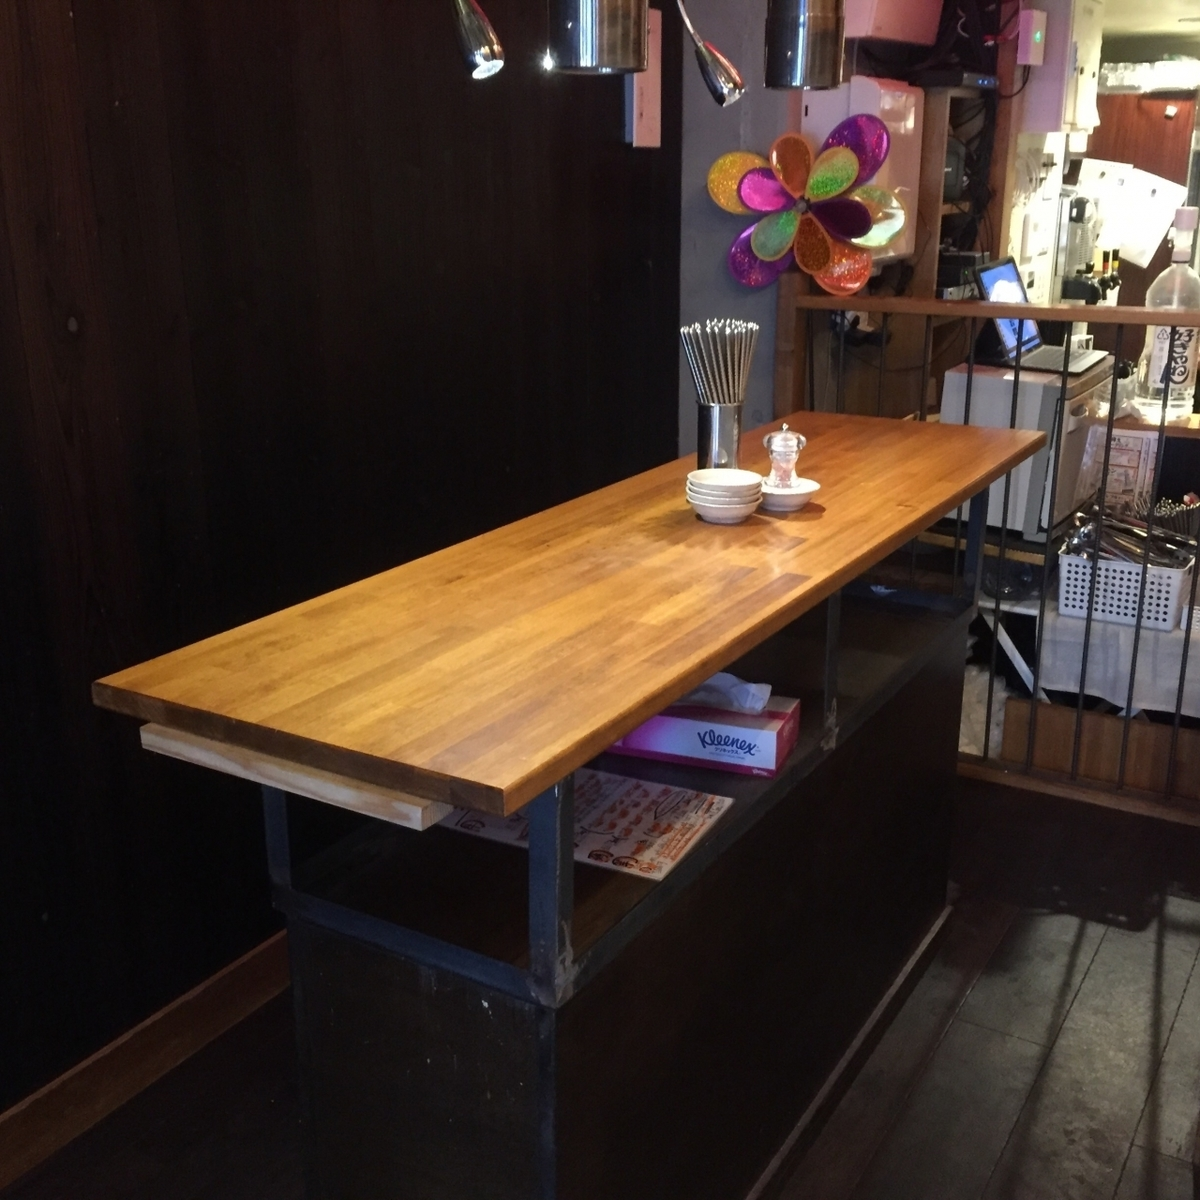 【1F】 standing drinking table lively ♪ near the entrance